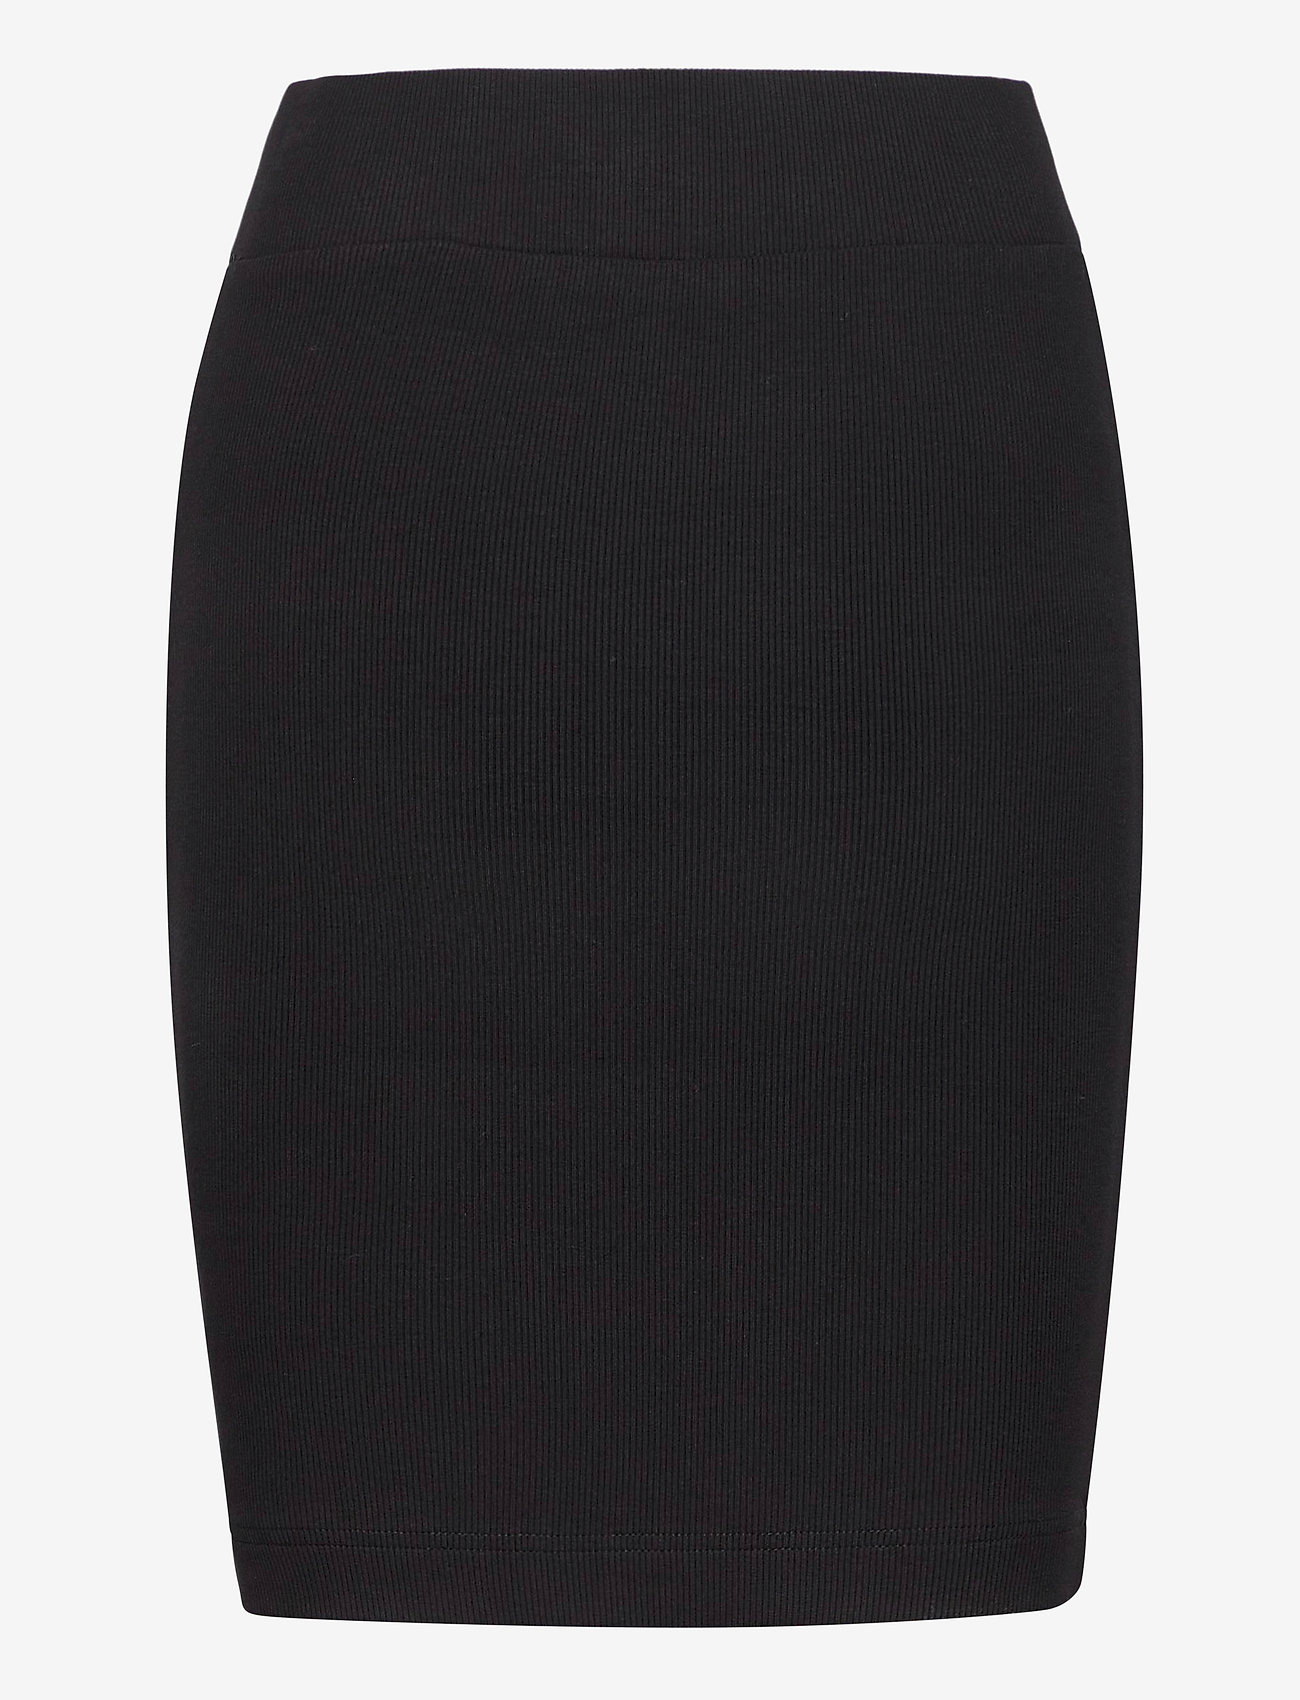 GUESS Jeans - TULAY SKIRT - jet black a996 - 1